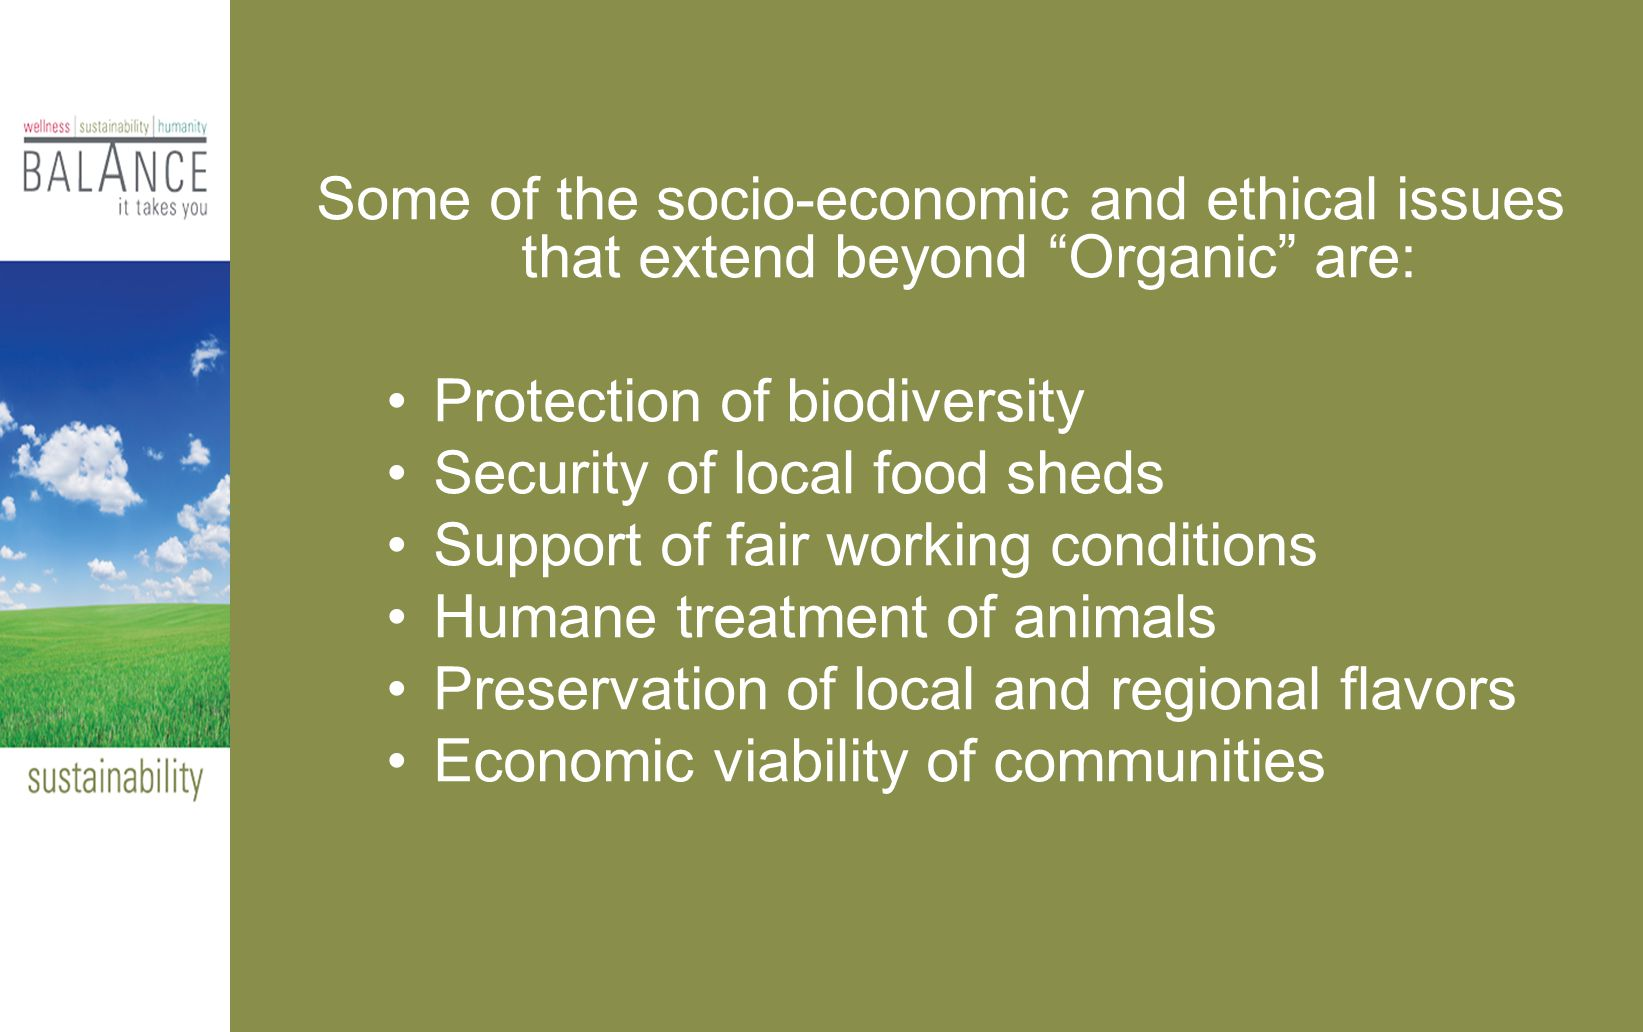 Some of the socio-economic and ethical issues that extend beyond Organic are: Protection of biodiversity Security of local food sheds Support of fair working conditions Humane treatment of animals Preservation of local and regional flavors Economic viability of communities